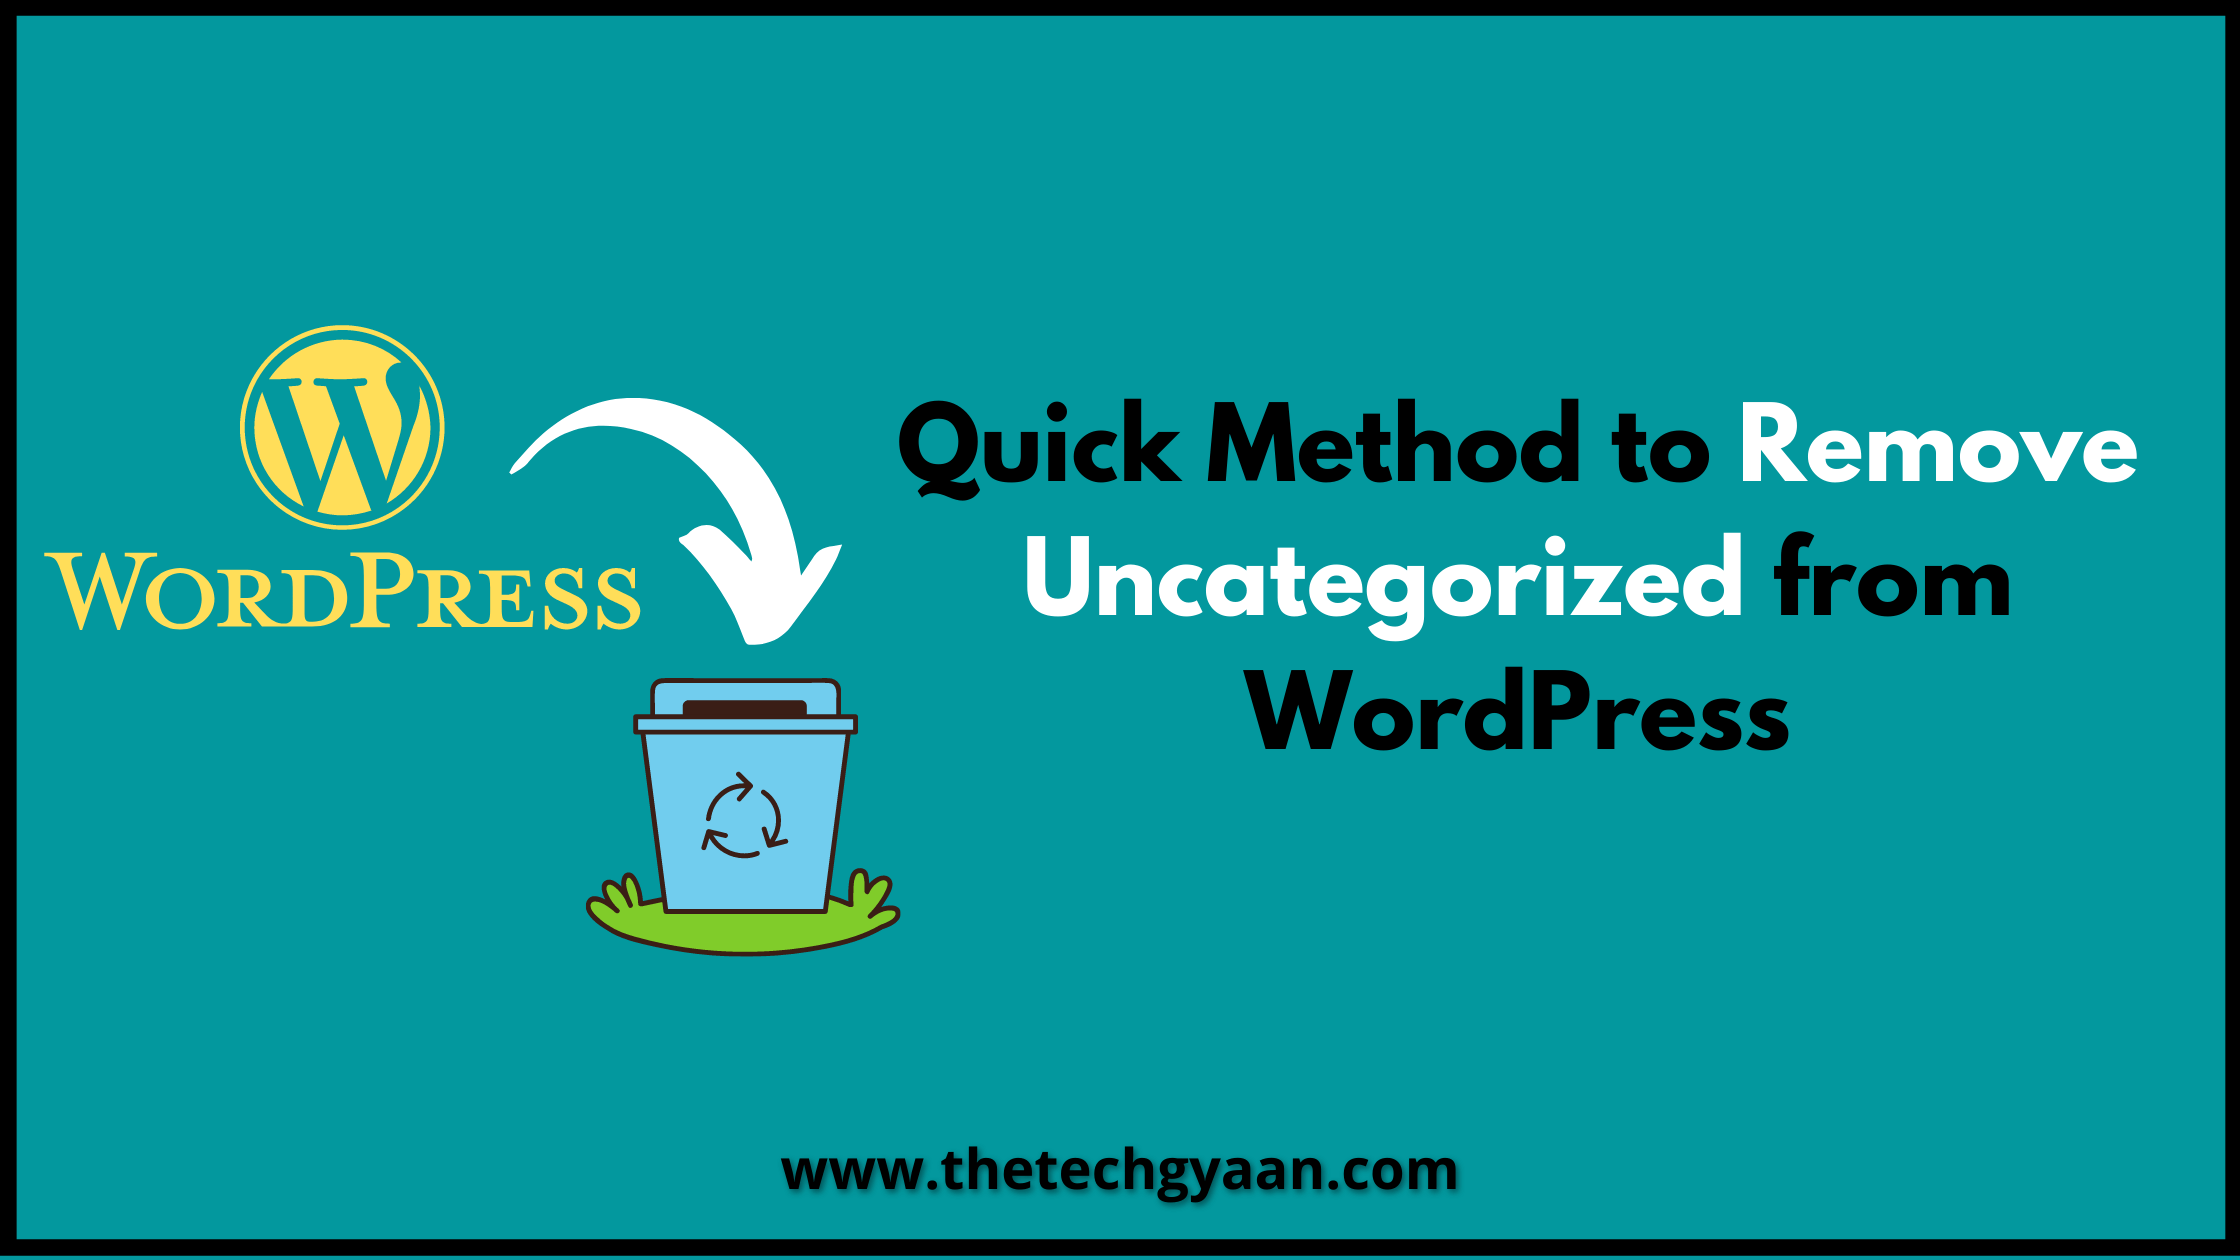 Quick Method to Remove Uncategorized from WordPress 2020.